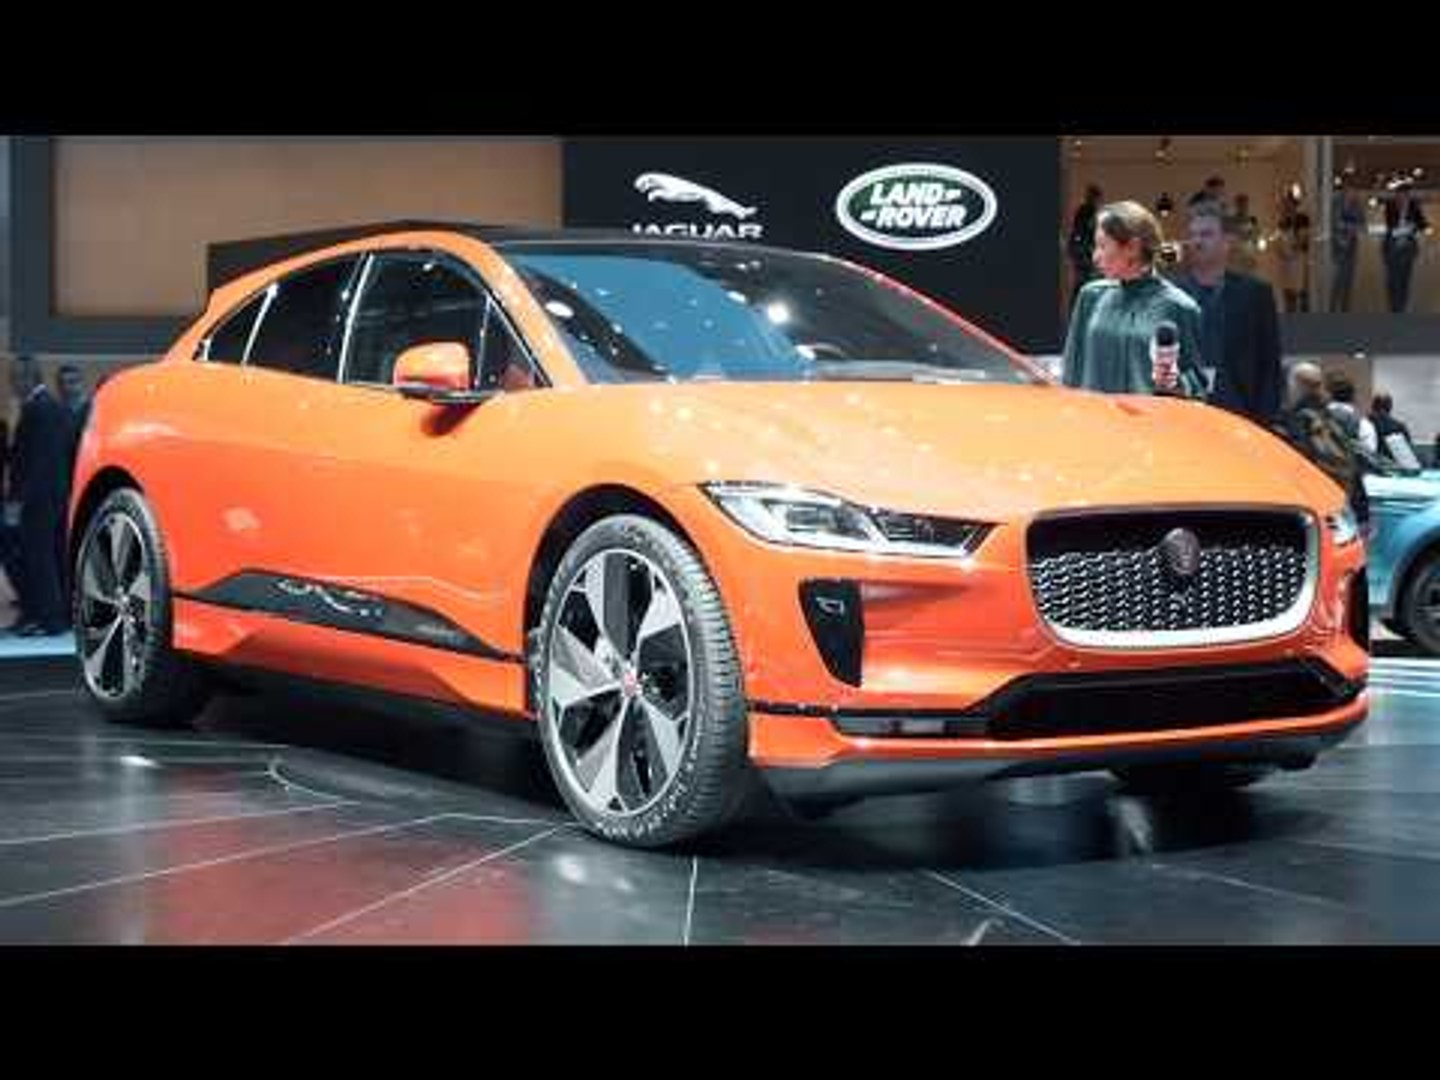 Geneva 2018 - Premiere of the Jaguar I-Pace and Range Rover SV Coupe